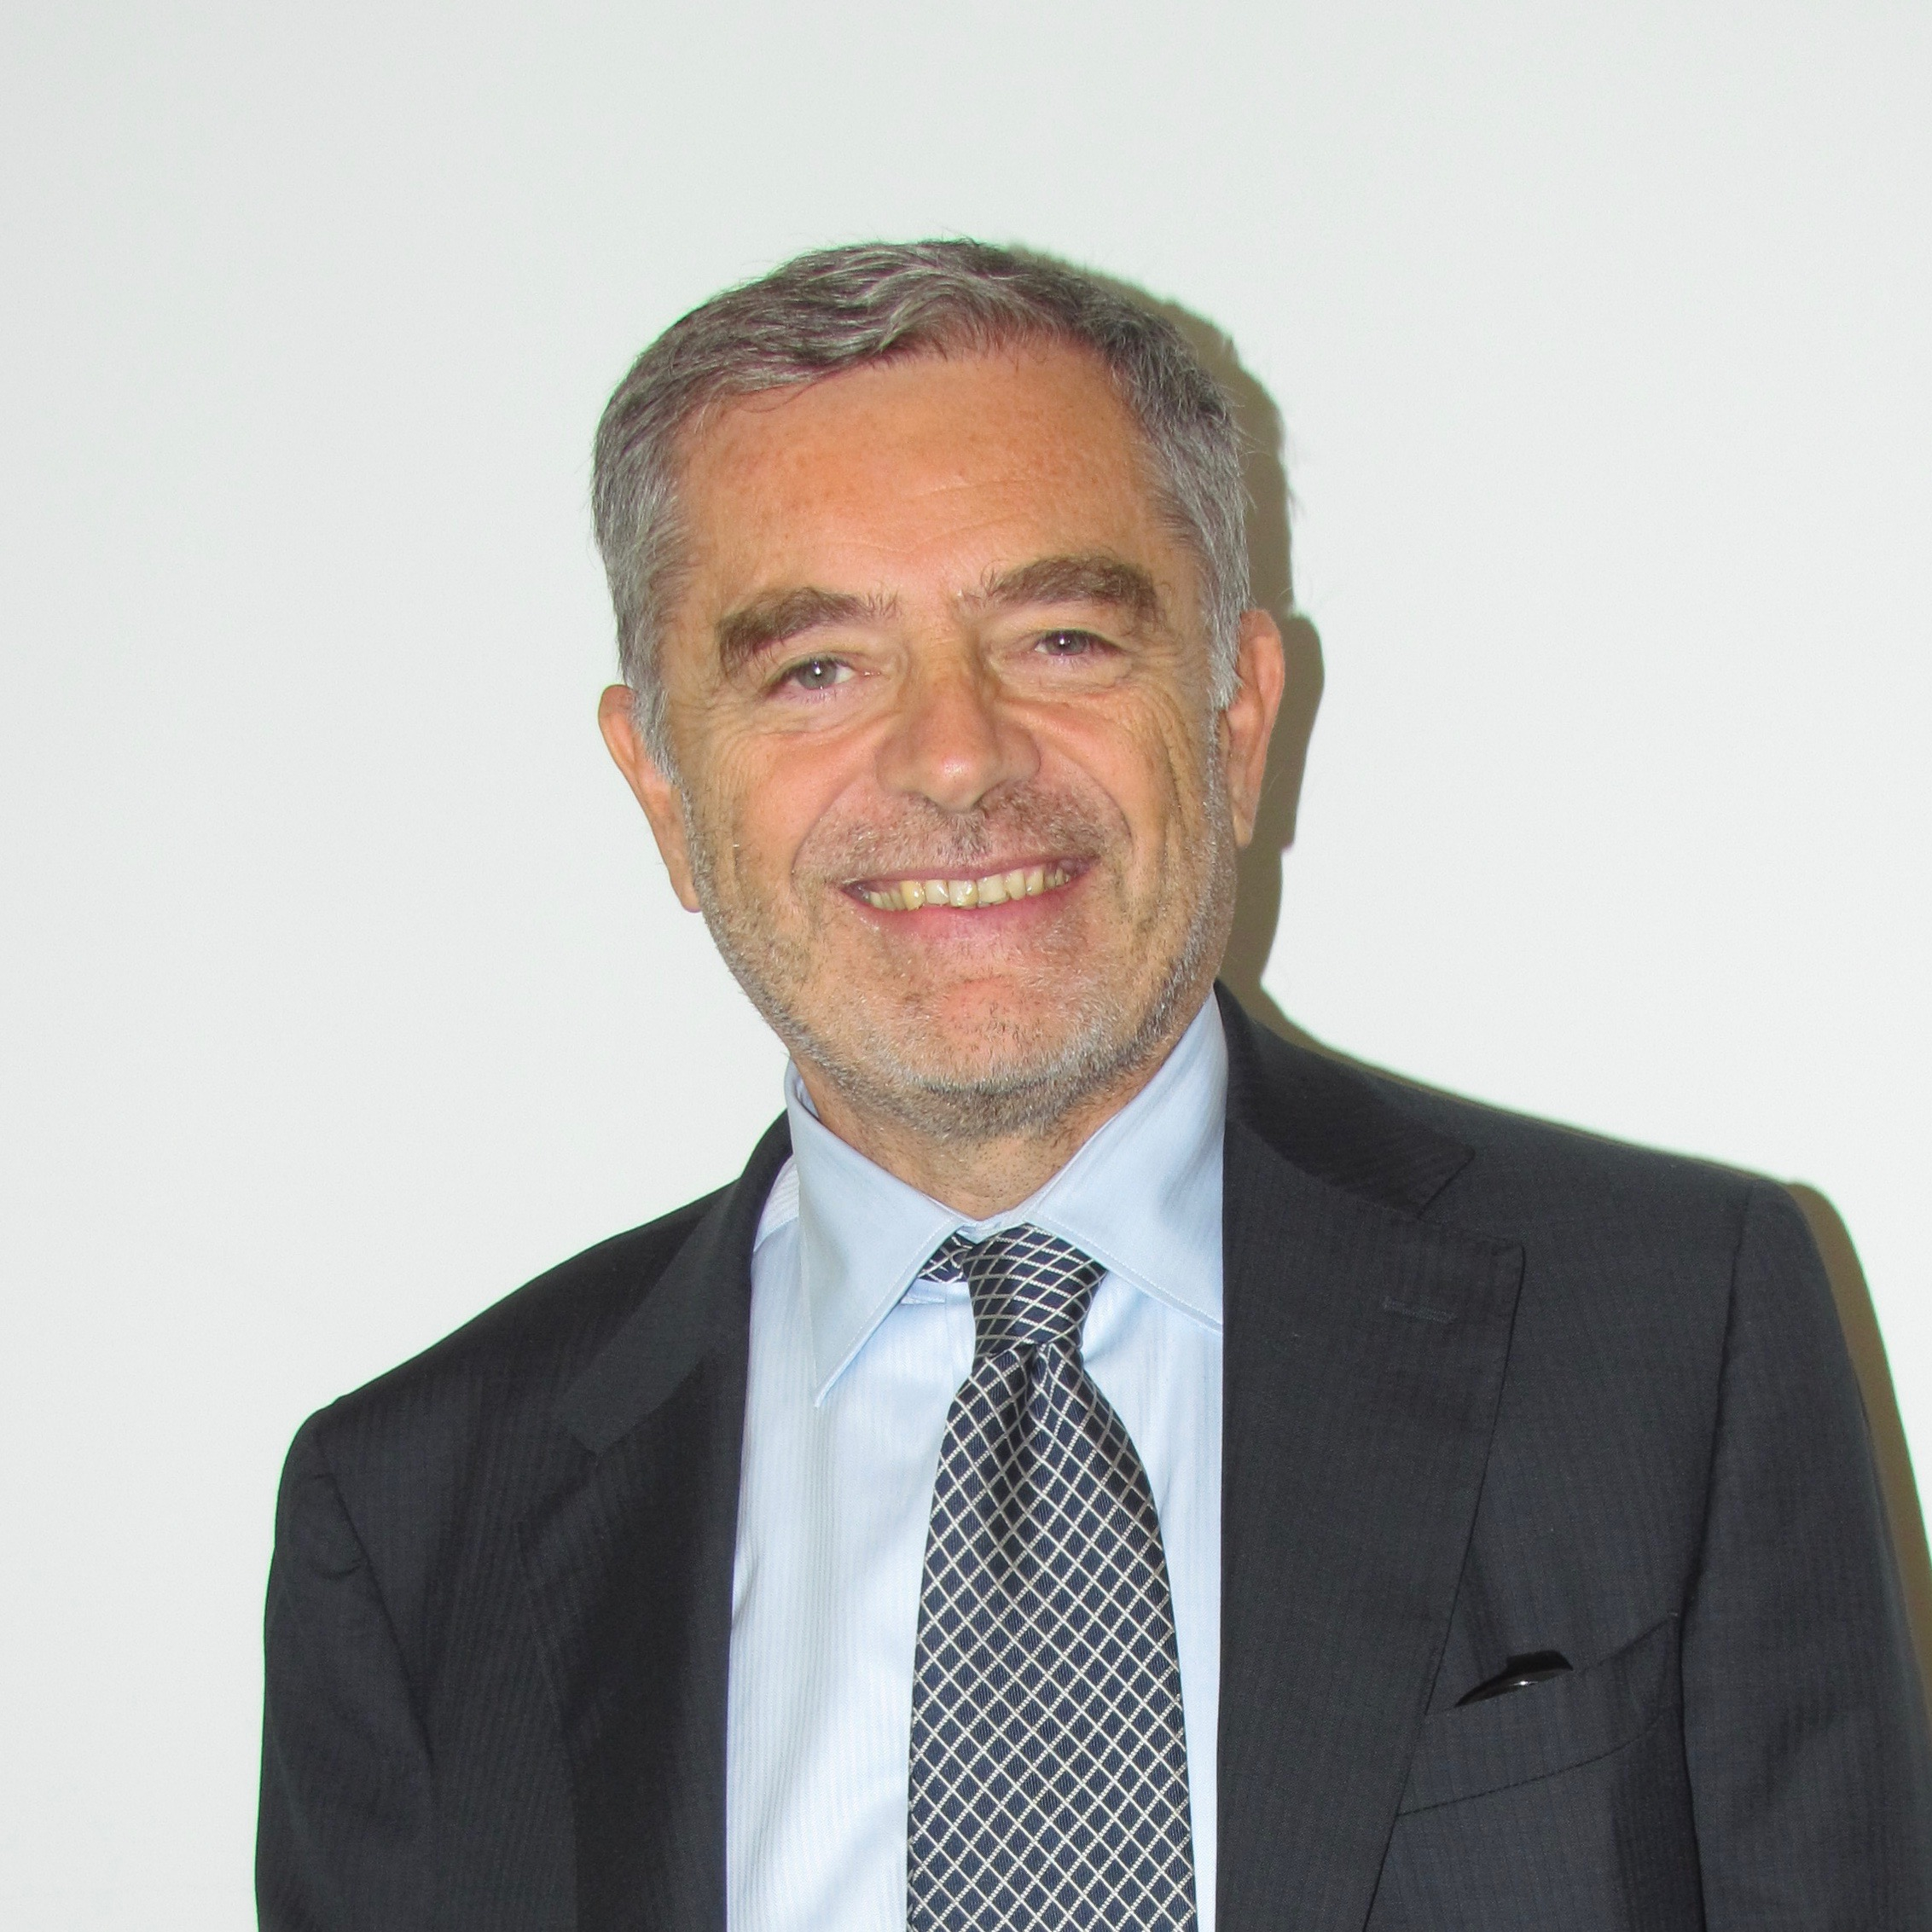 Claudio Sella